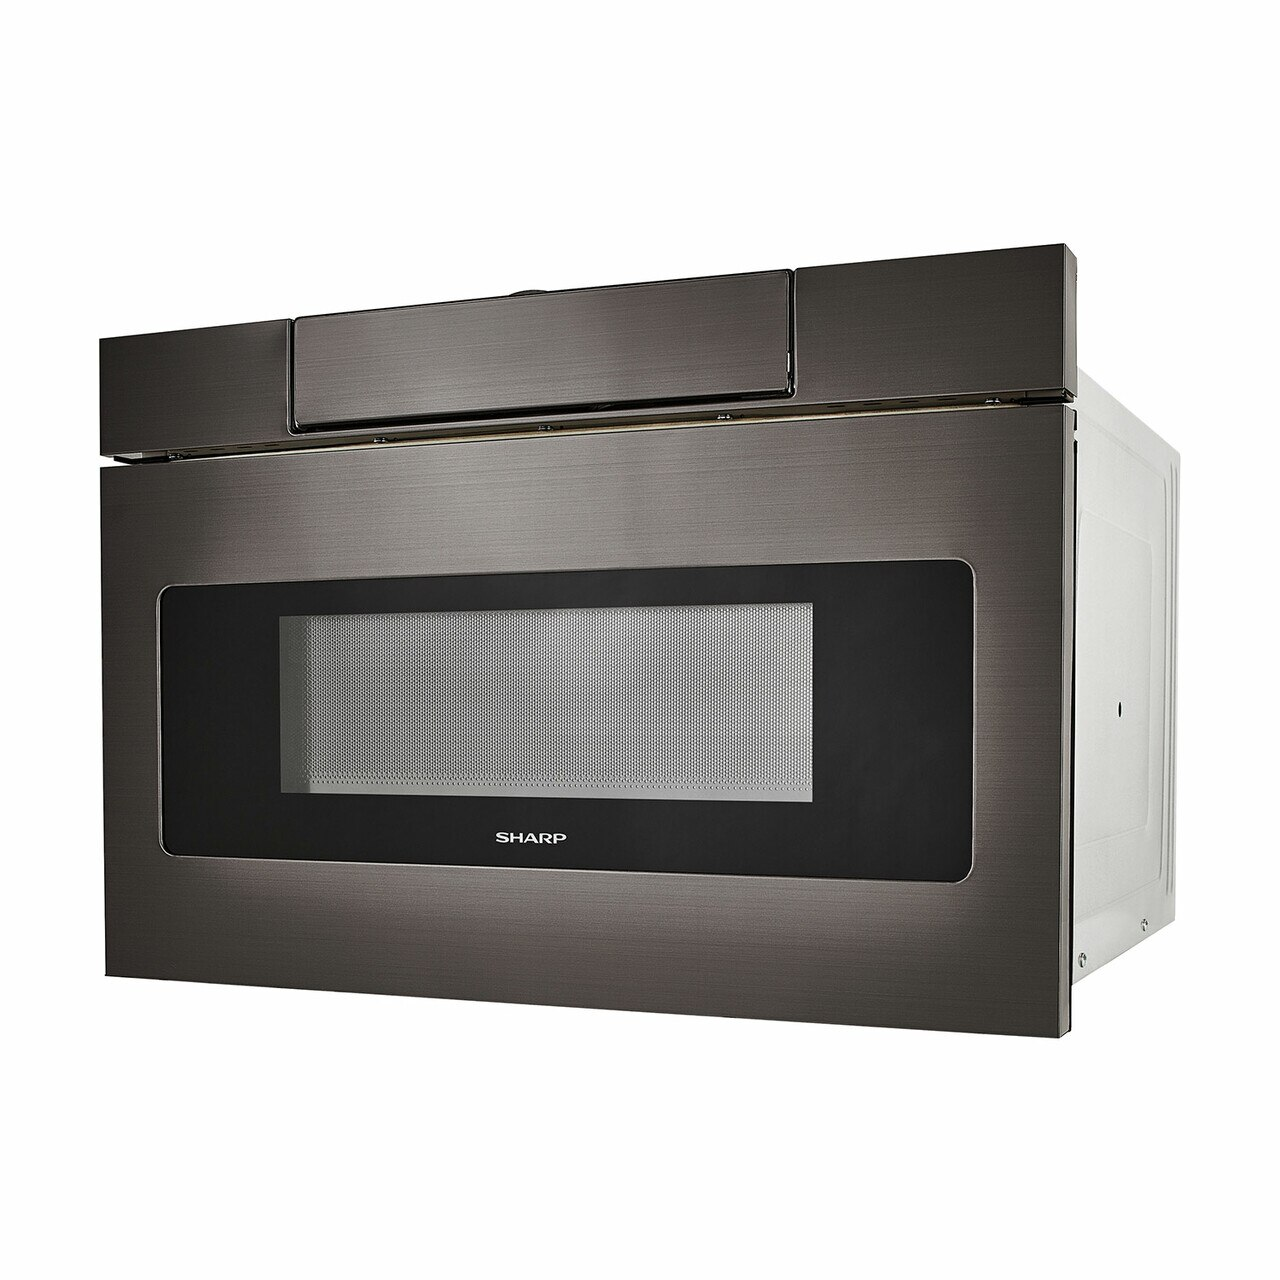 24 in. Black Stainless Steel Microwave Drawer (SMD2470AH) – left side view